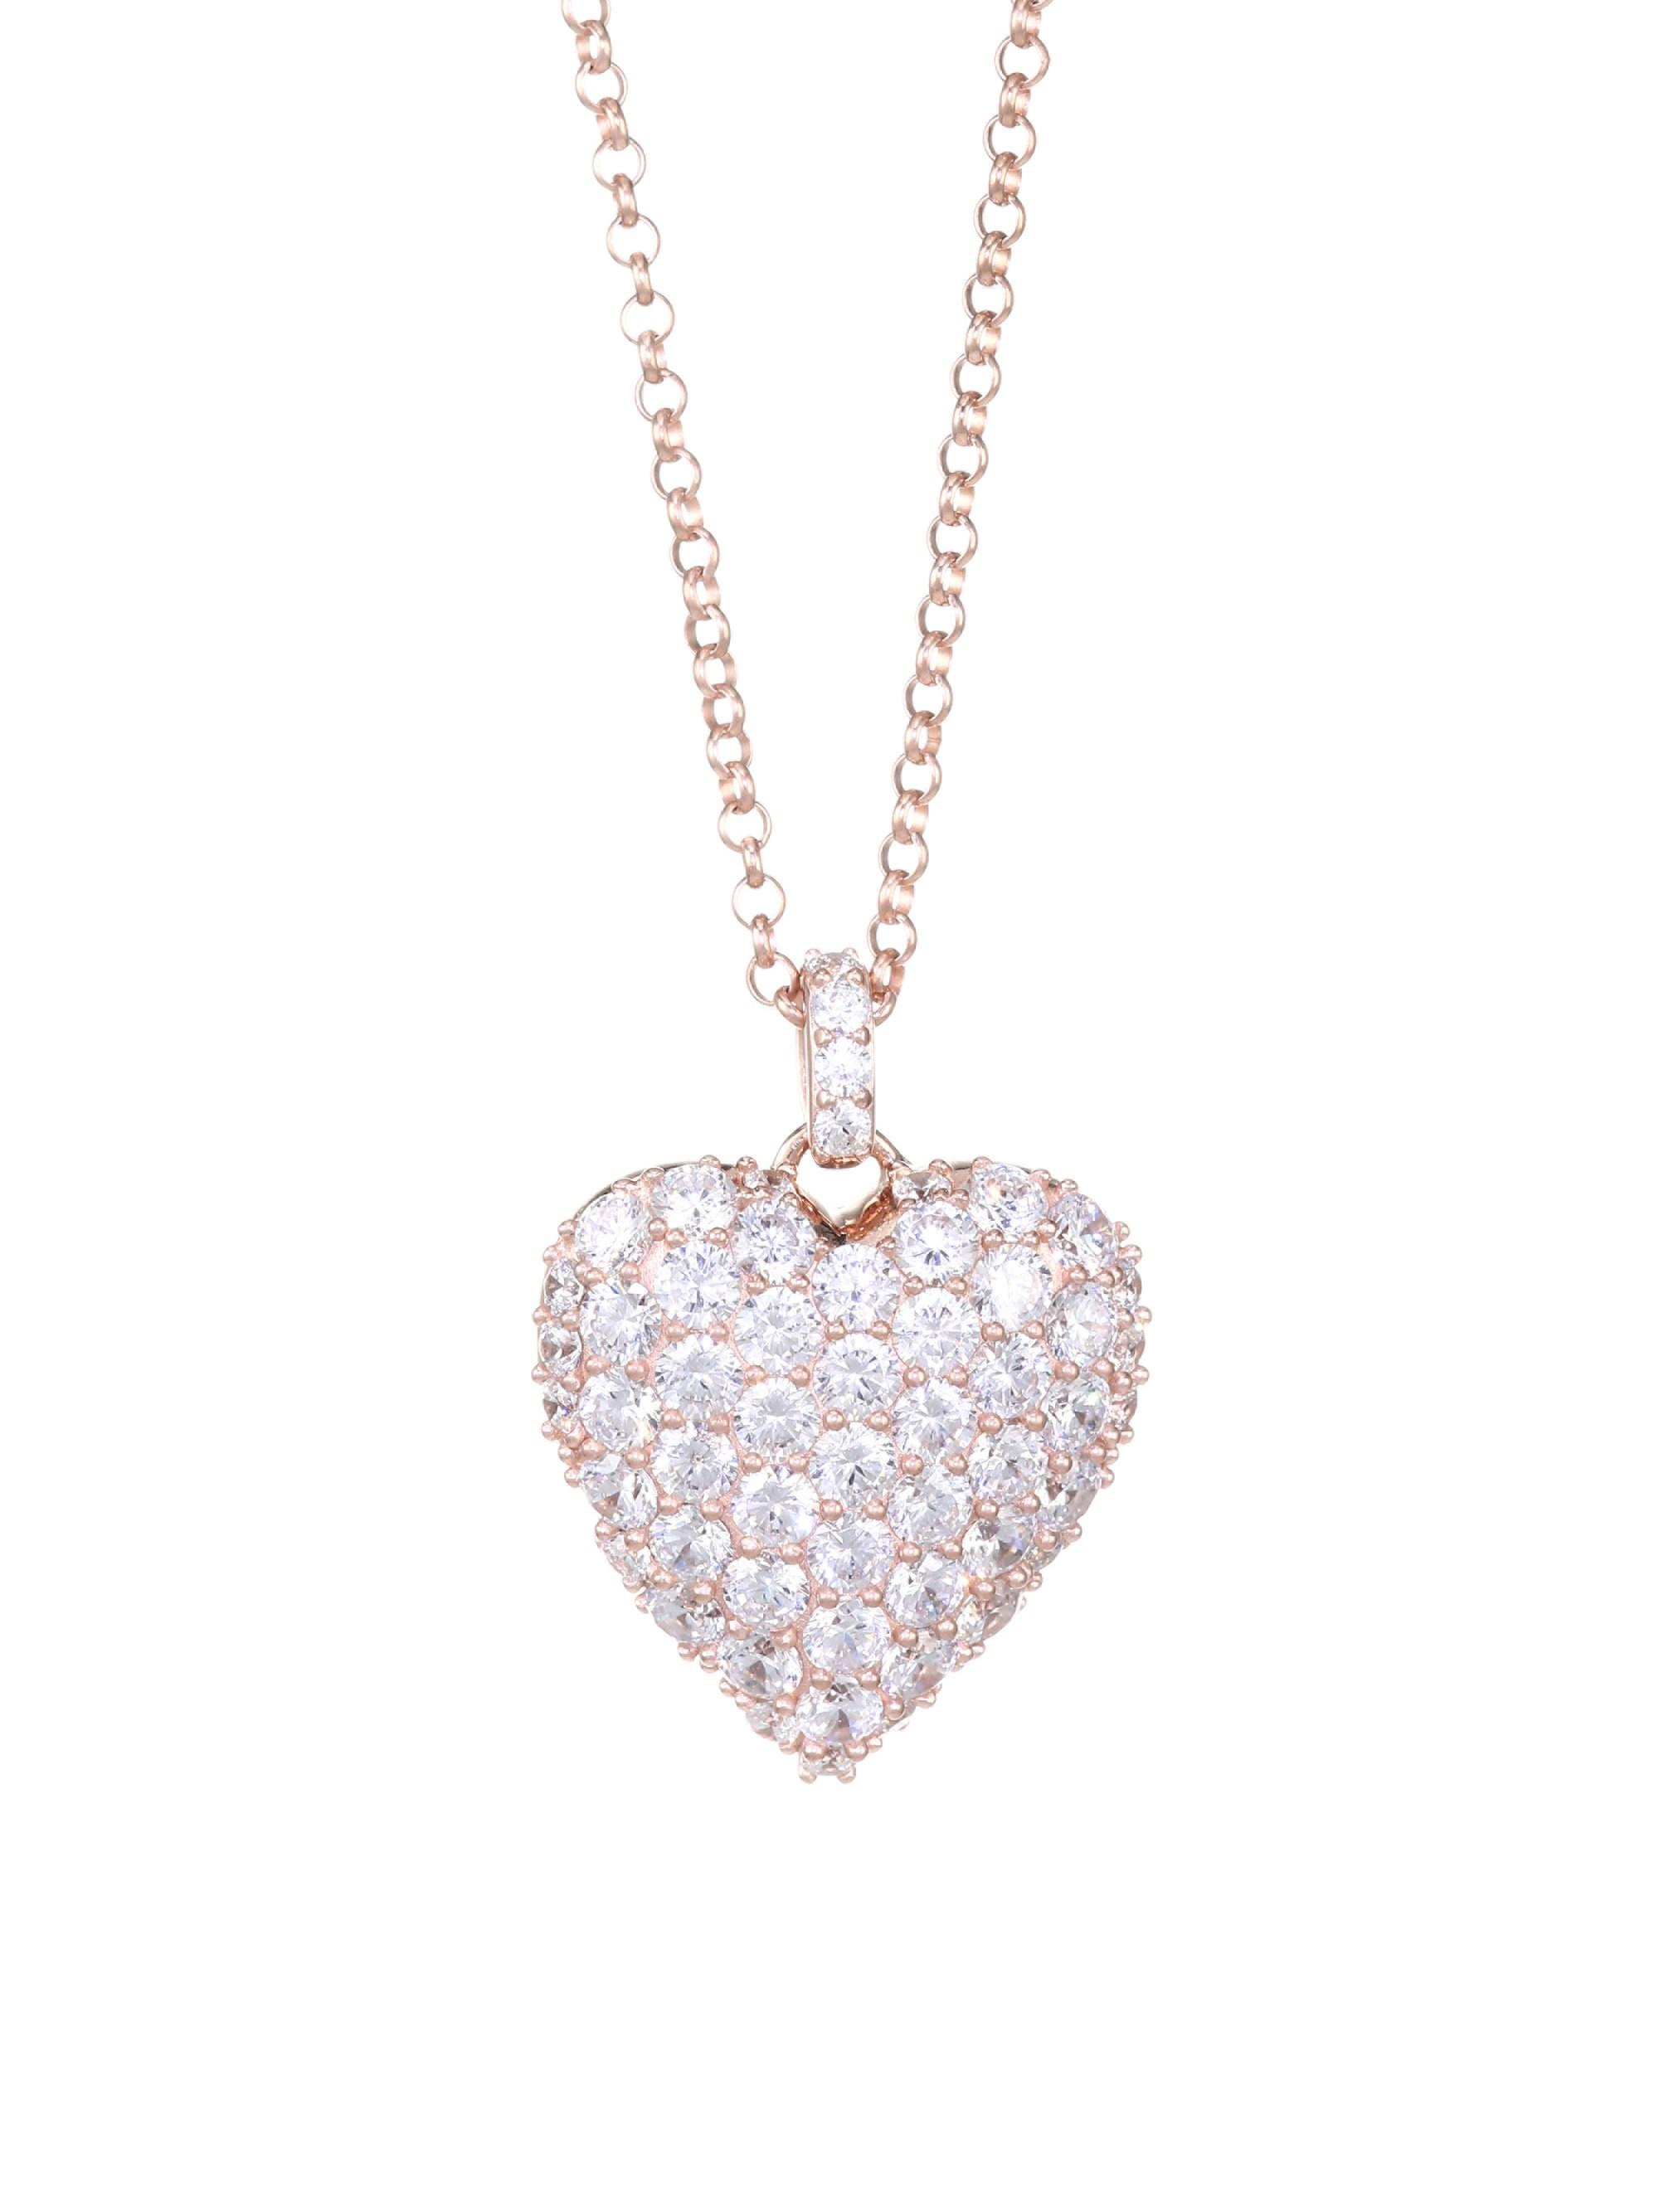 12mm Rose Cubic Zirconia Crystal Heart Charm Necklaces Jewelry & Watches